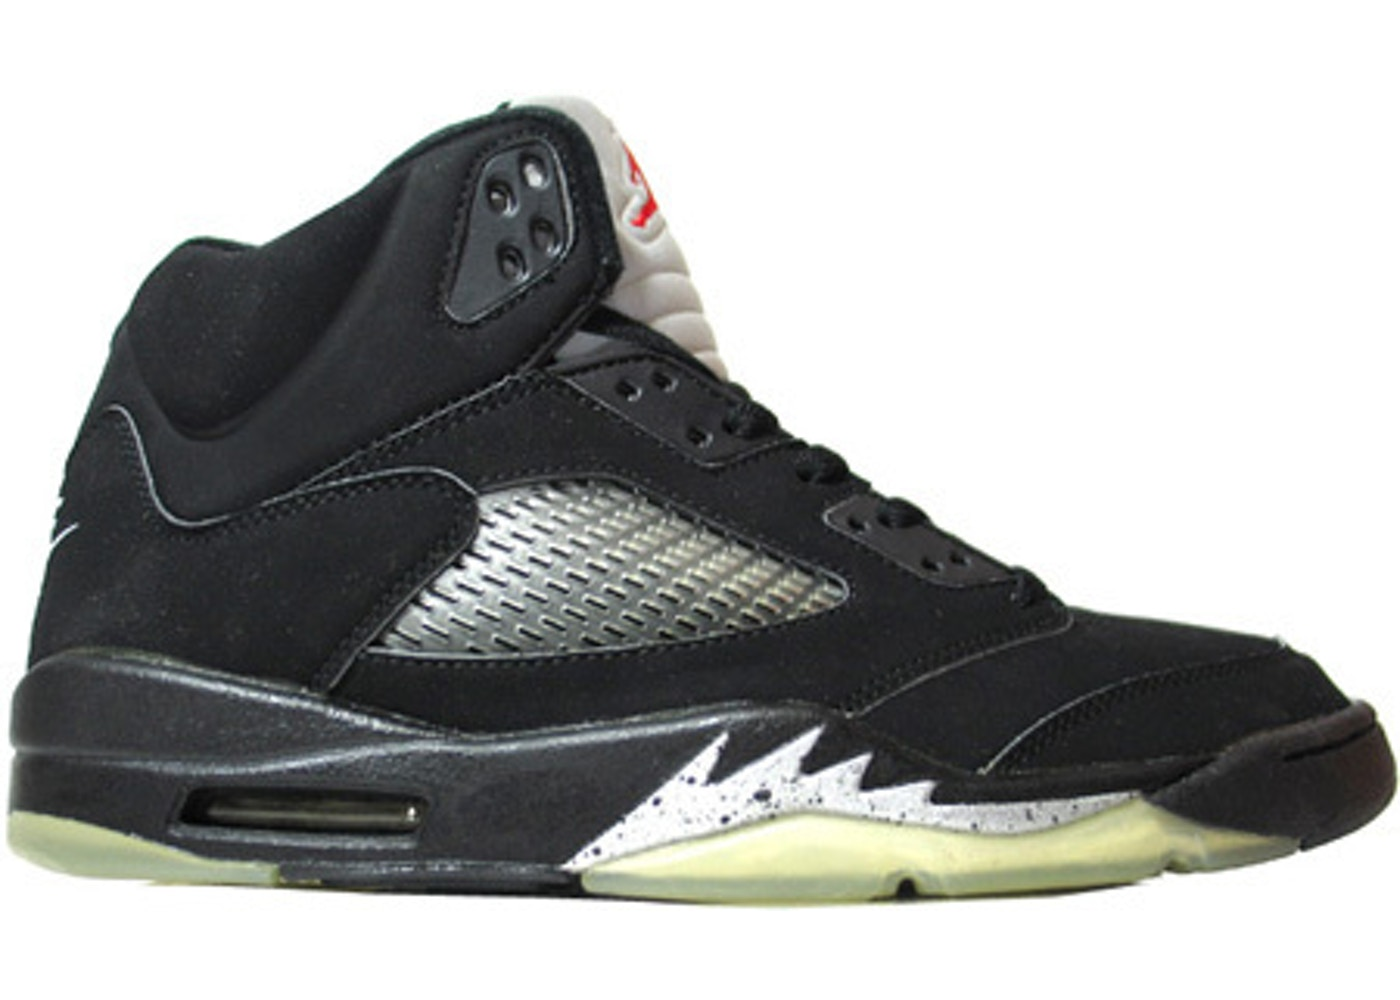 the best attitude 771d8 a9c12 Jordan 5 OG Black Metallic (1990) - 4384